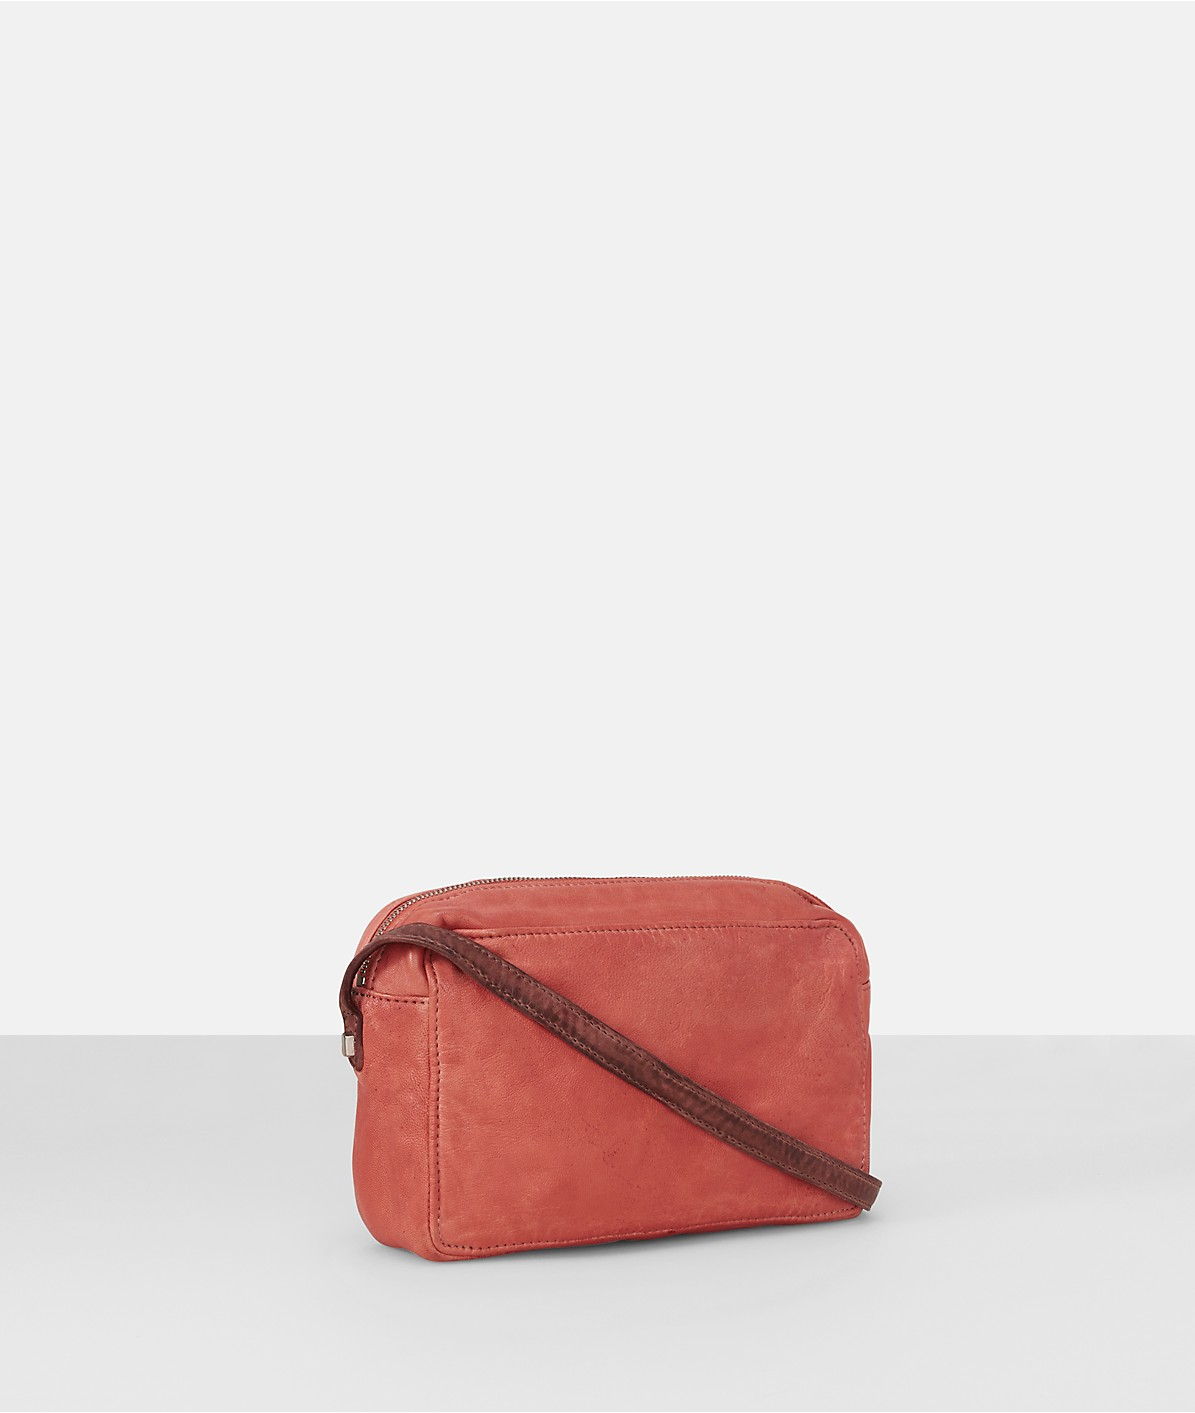 Biskra shoulder bag from liebeskind